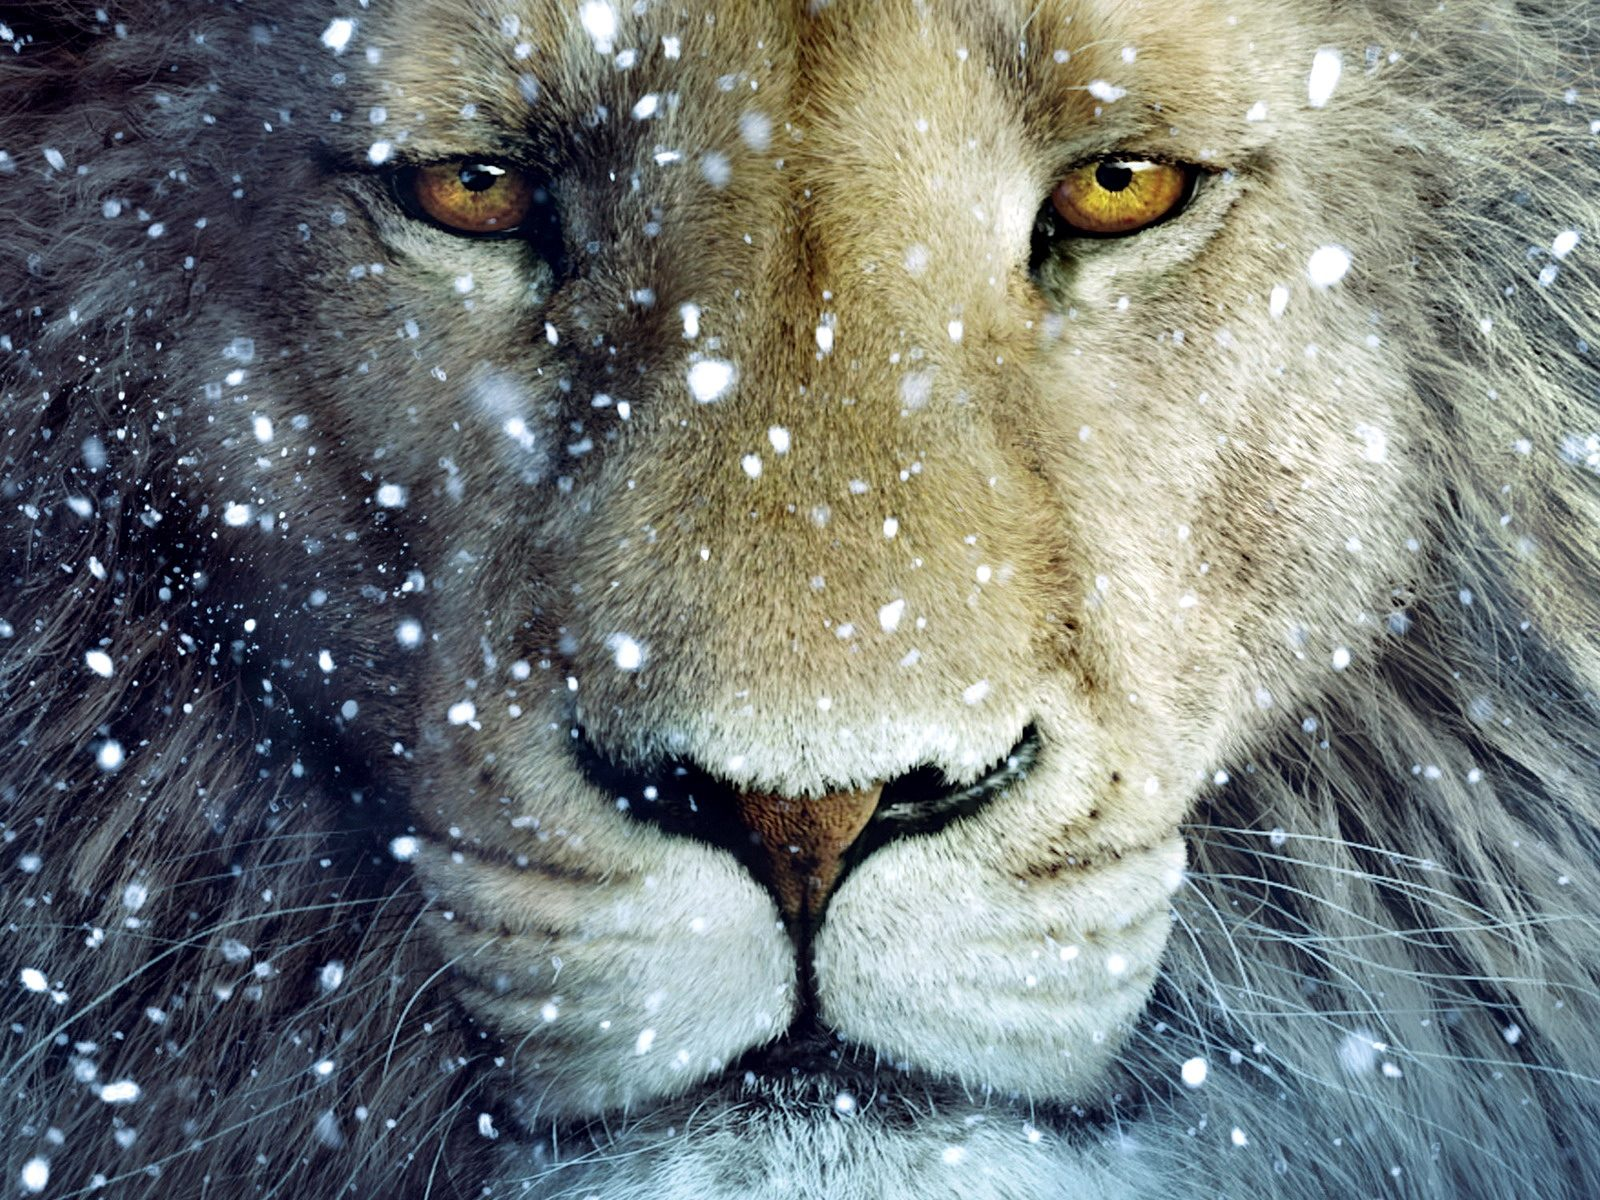 aslan-lion-the-chronicles-of-narnia[1]